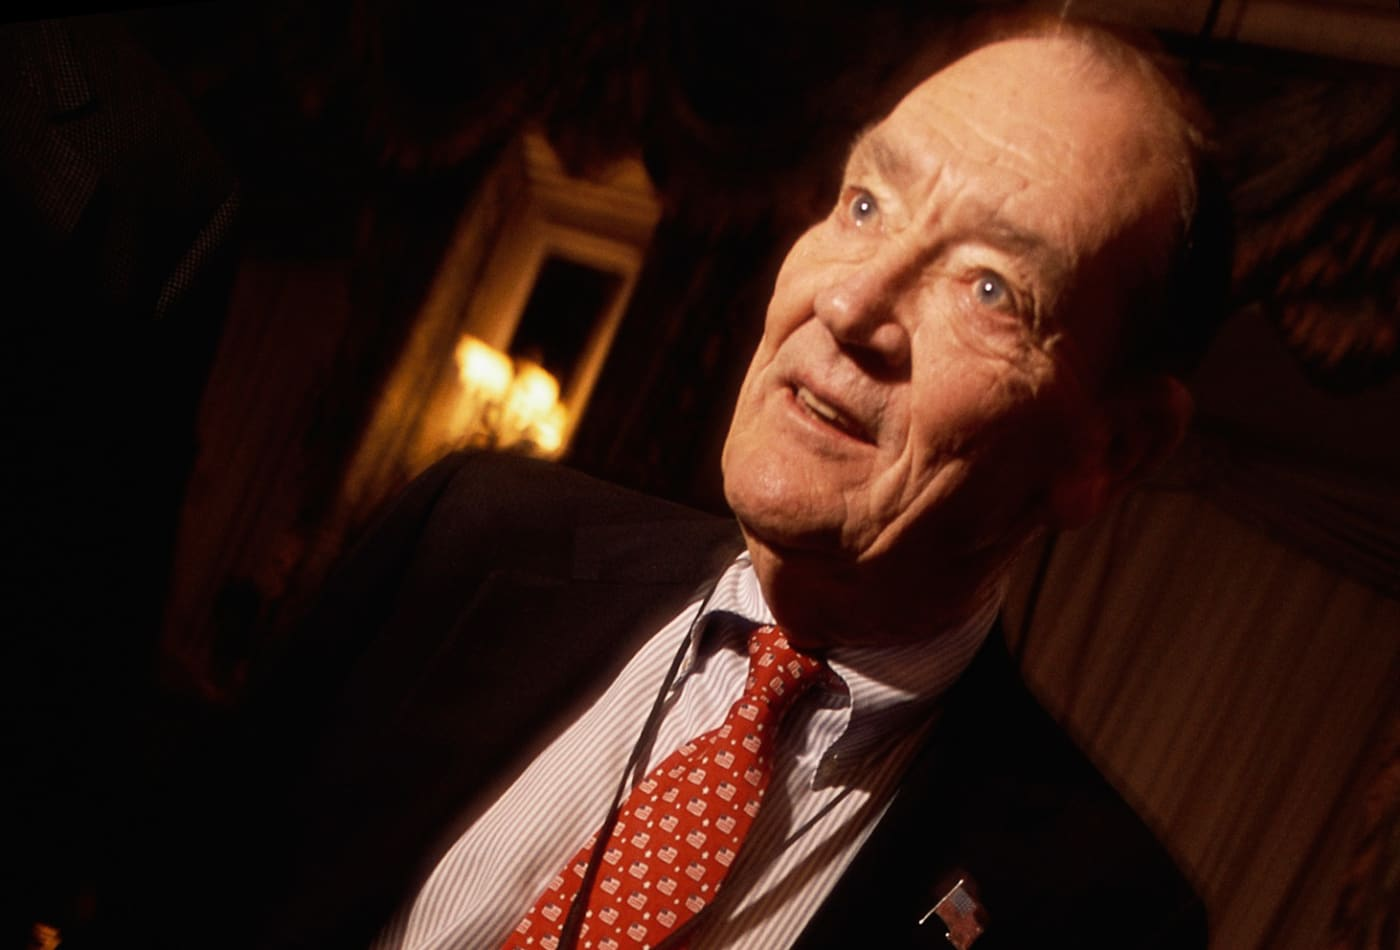 Jack Bogle taught a generation how to invest for the long term—this was his strategy